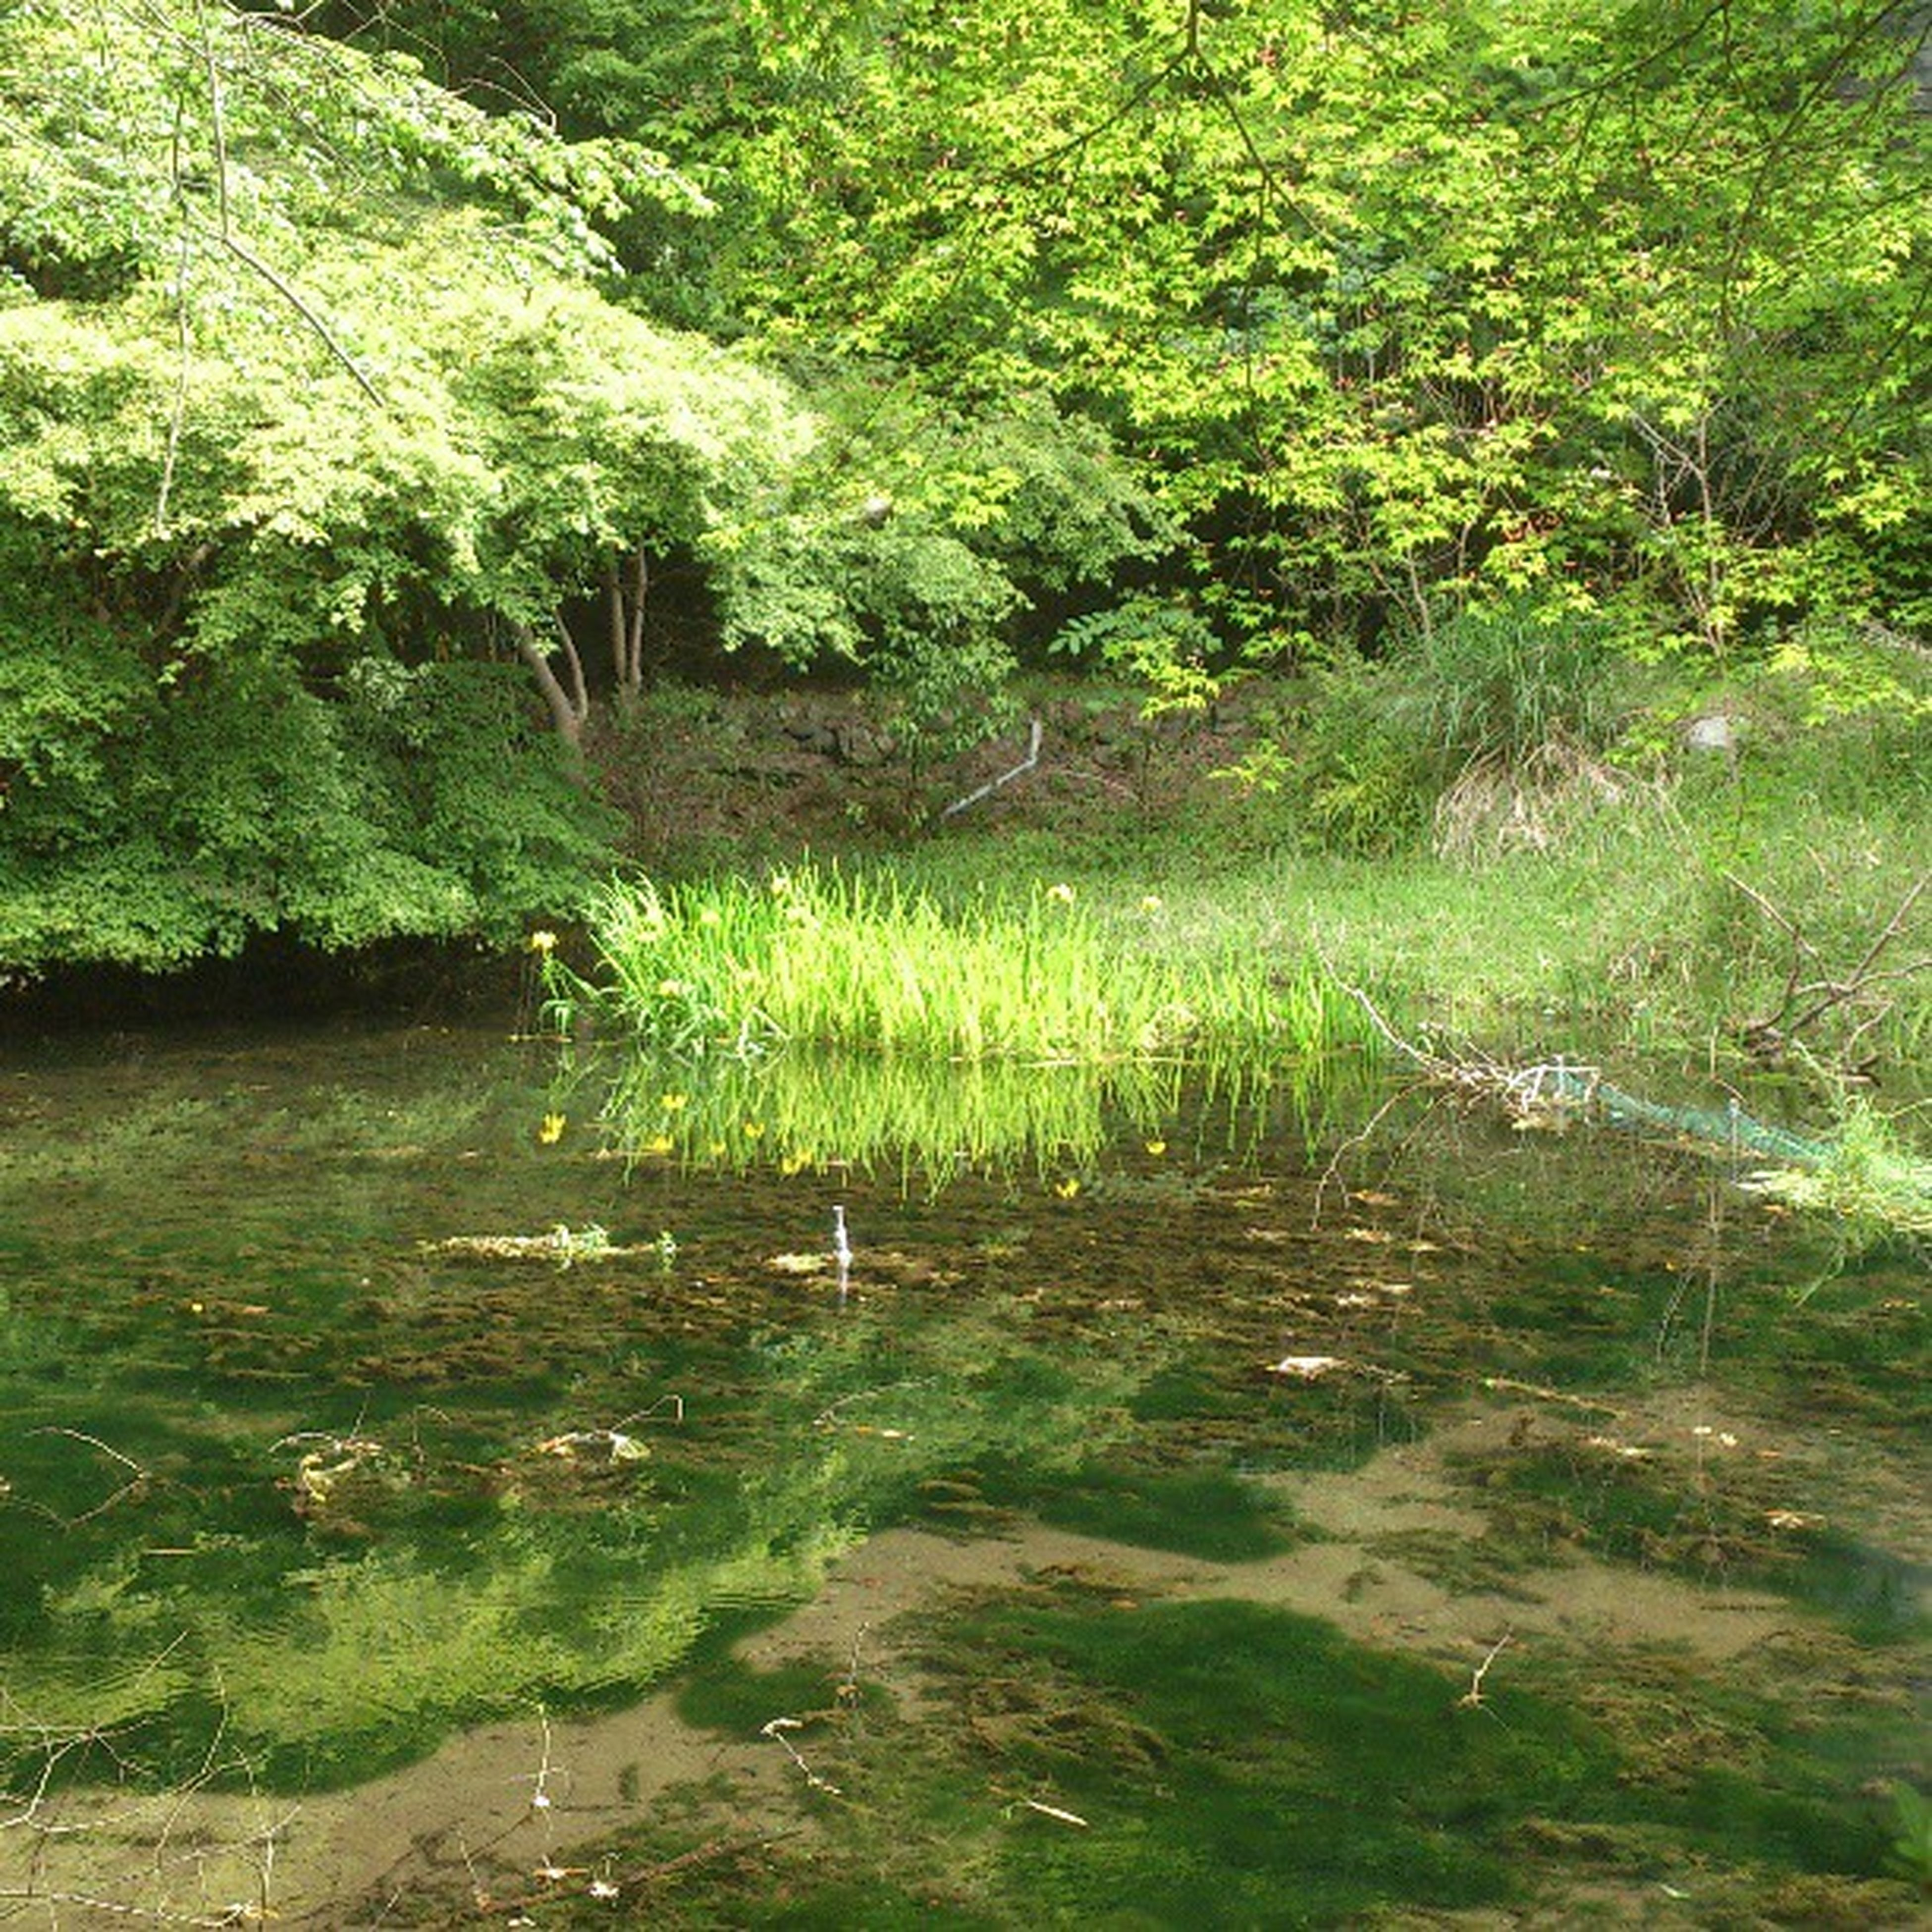 tree, water, tranquility, green color, tranquil scene, nature, growth, beauty in nature, scenics, river, plant, lake, reflection, pond, grass, forest, lush foliage, stream, idyllic, branch